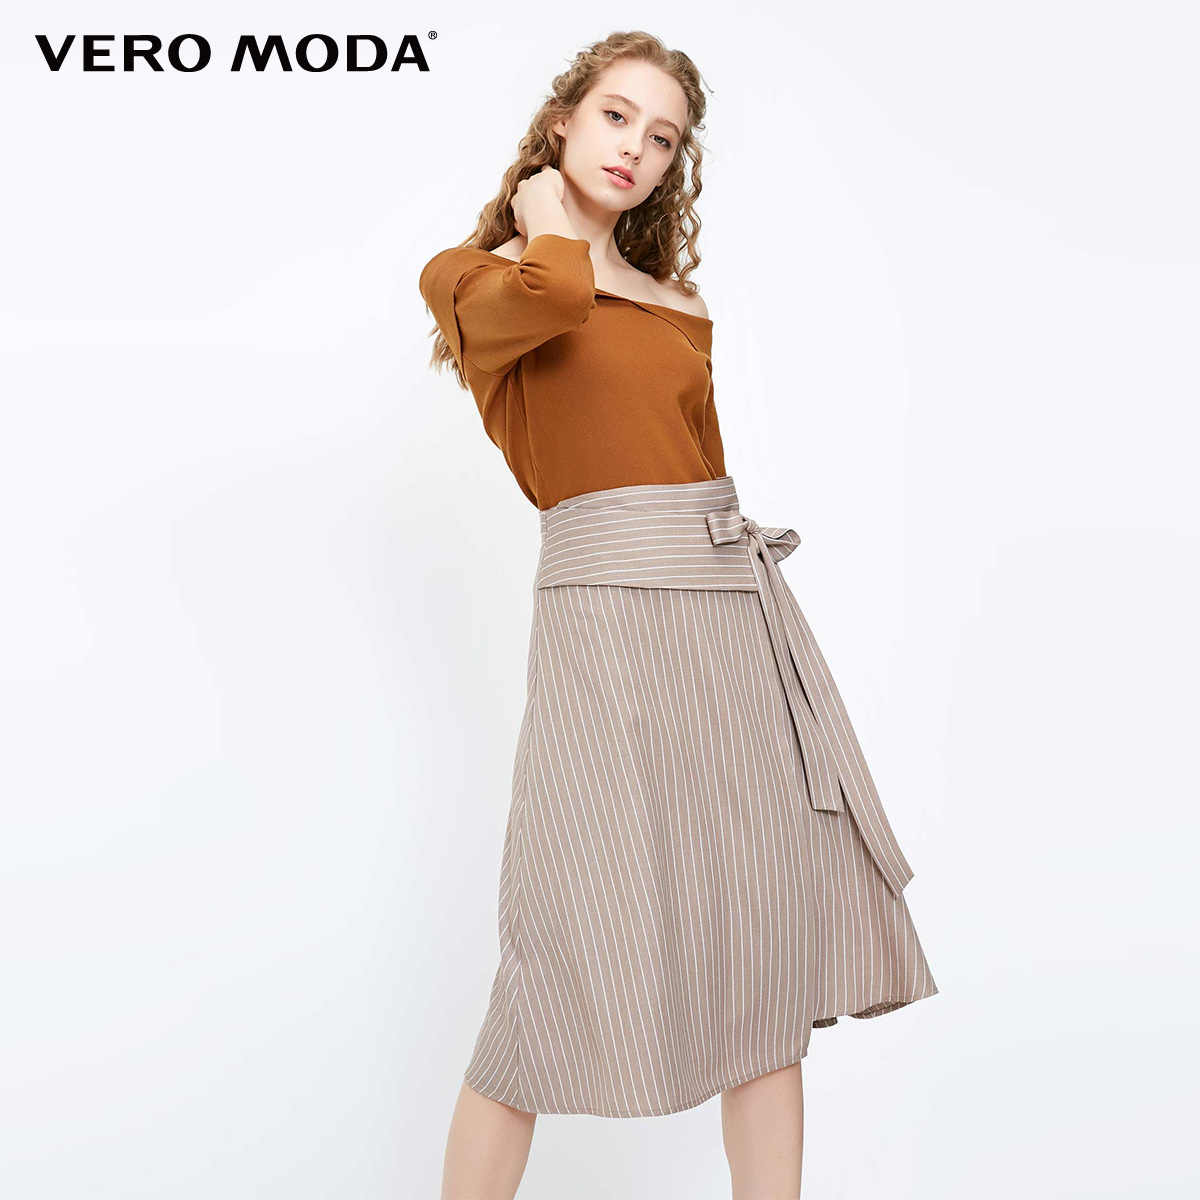 Vero Moda 2019 New Arrivals Gestreepte Lace-up Mid Taille Rok | 318316549